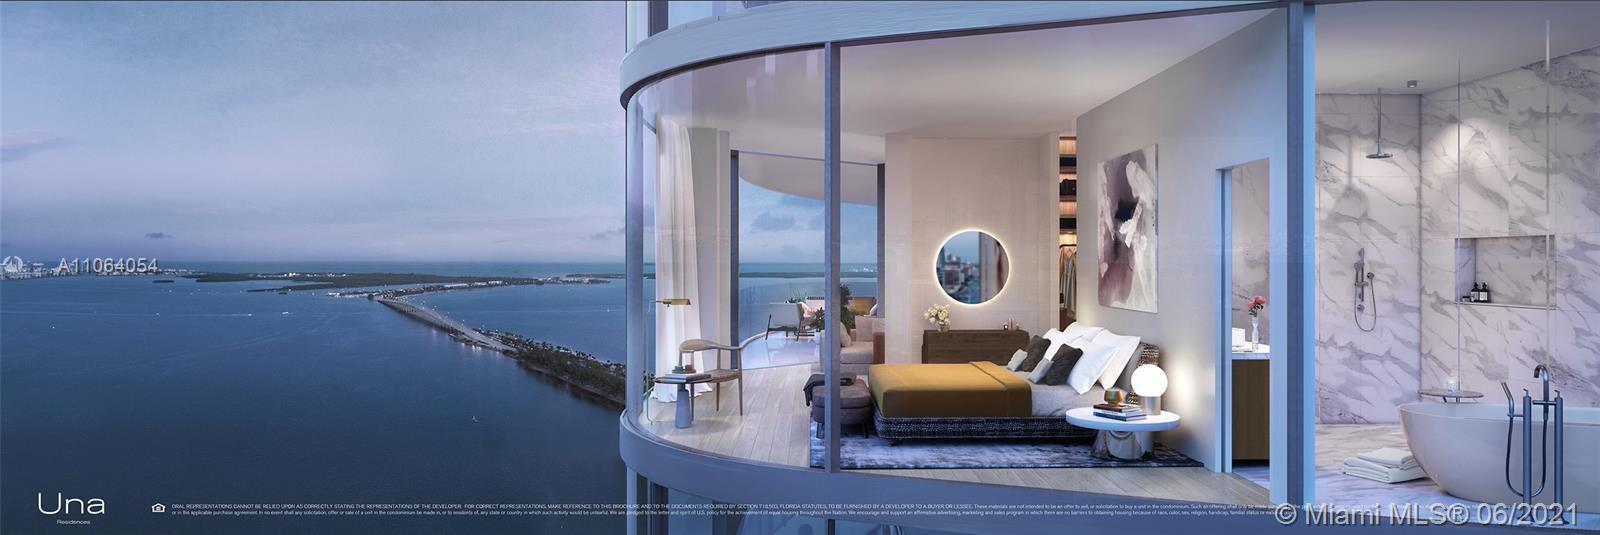 UNA's 135 luxury residences set the standard for Brickell waterfront living with visionary design, inviting gardens and unrivaled views across Biscayne Bay. The 47-story iconic tower is recognizable by the smooth, light metallic surface and striking silhouette that recalls the shape of a wave. 2-5 bedroom residences feature 11 ft floor-to-ceiling glass and expansive terraces as well as an array of amenities including three pools, a spa and gym elegantly envisioned by the chairman of Aman, private elevators and private boat slips. With easy access to Coconut Grove, Downtown, Brickell, MIA and the beaches of Key Biscayne, UNA is exemplar for Miami Living. - unit comes finished with flooring.